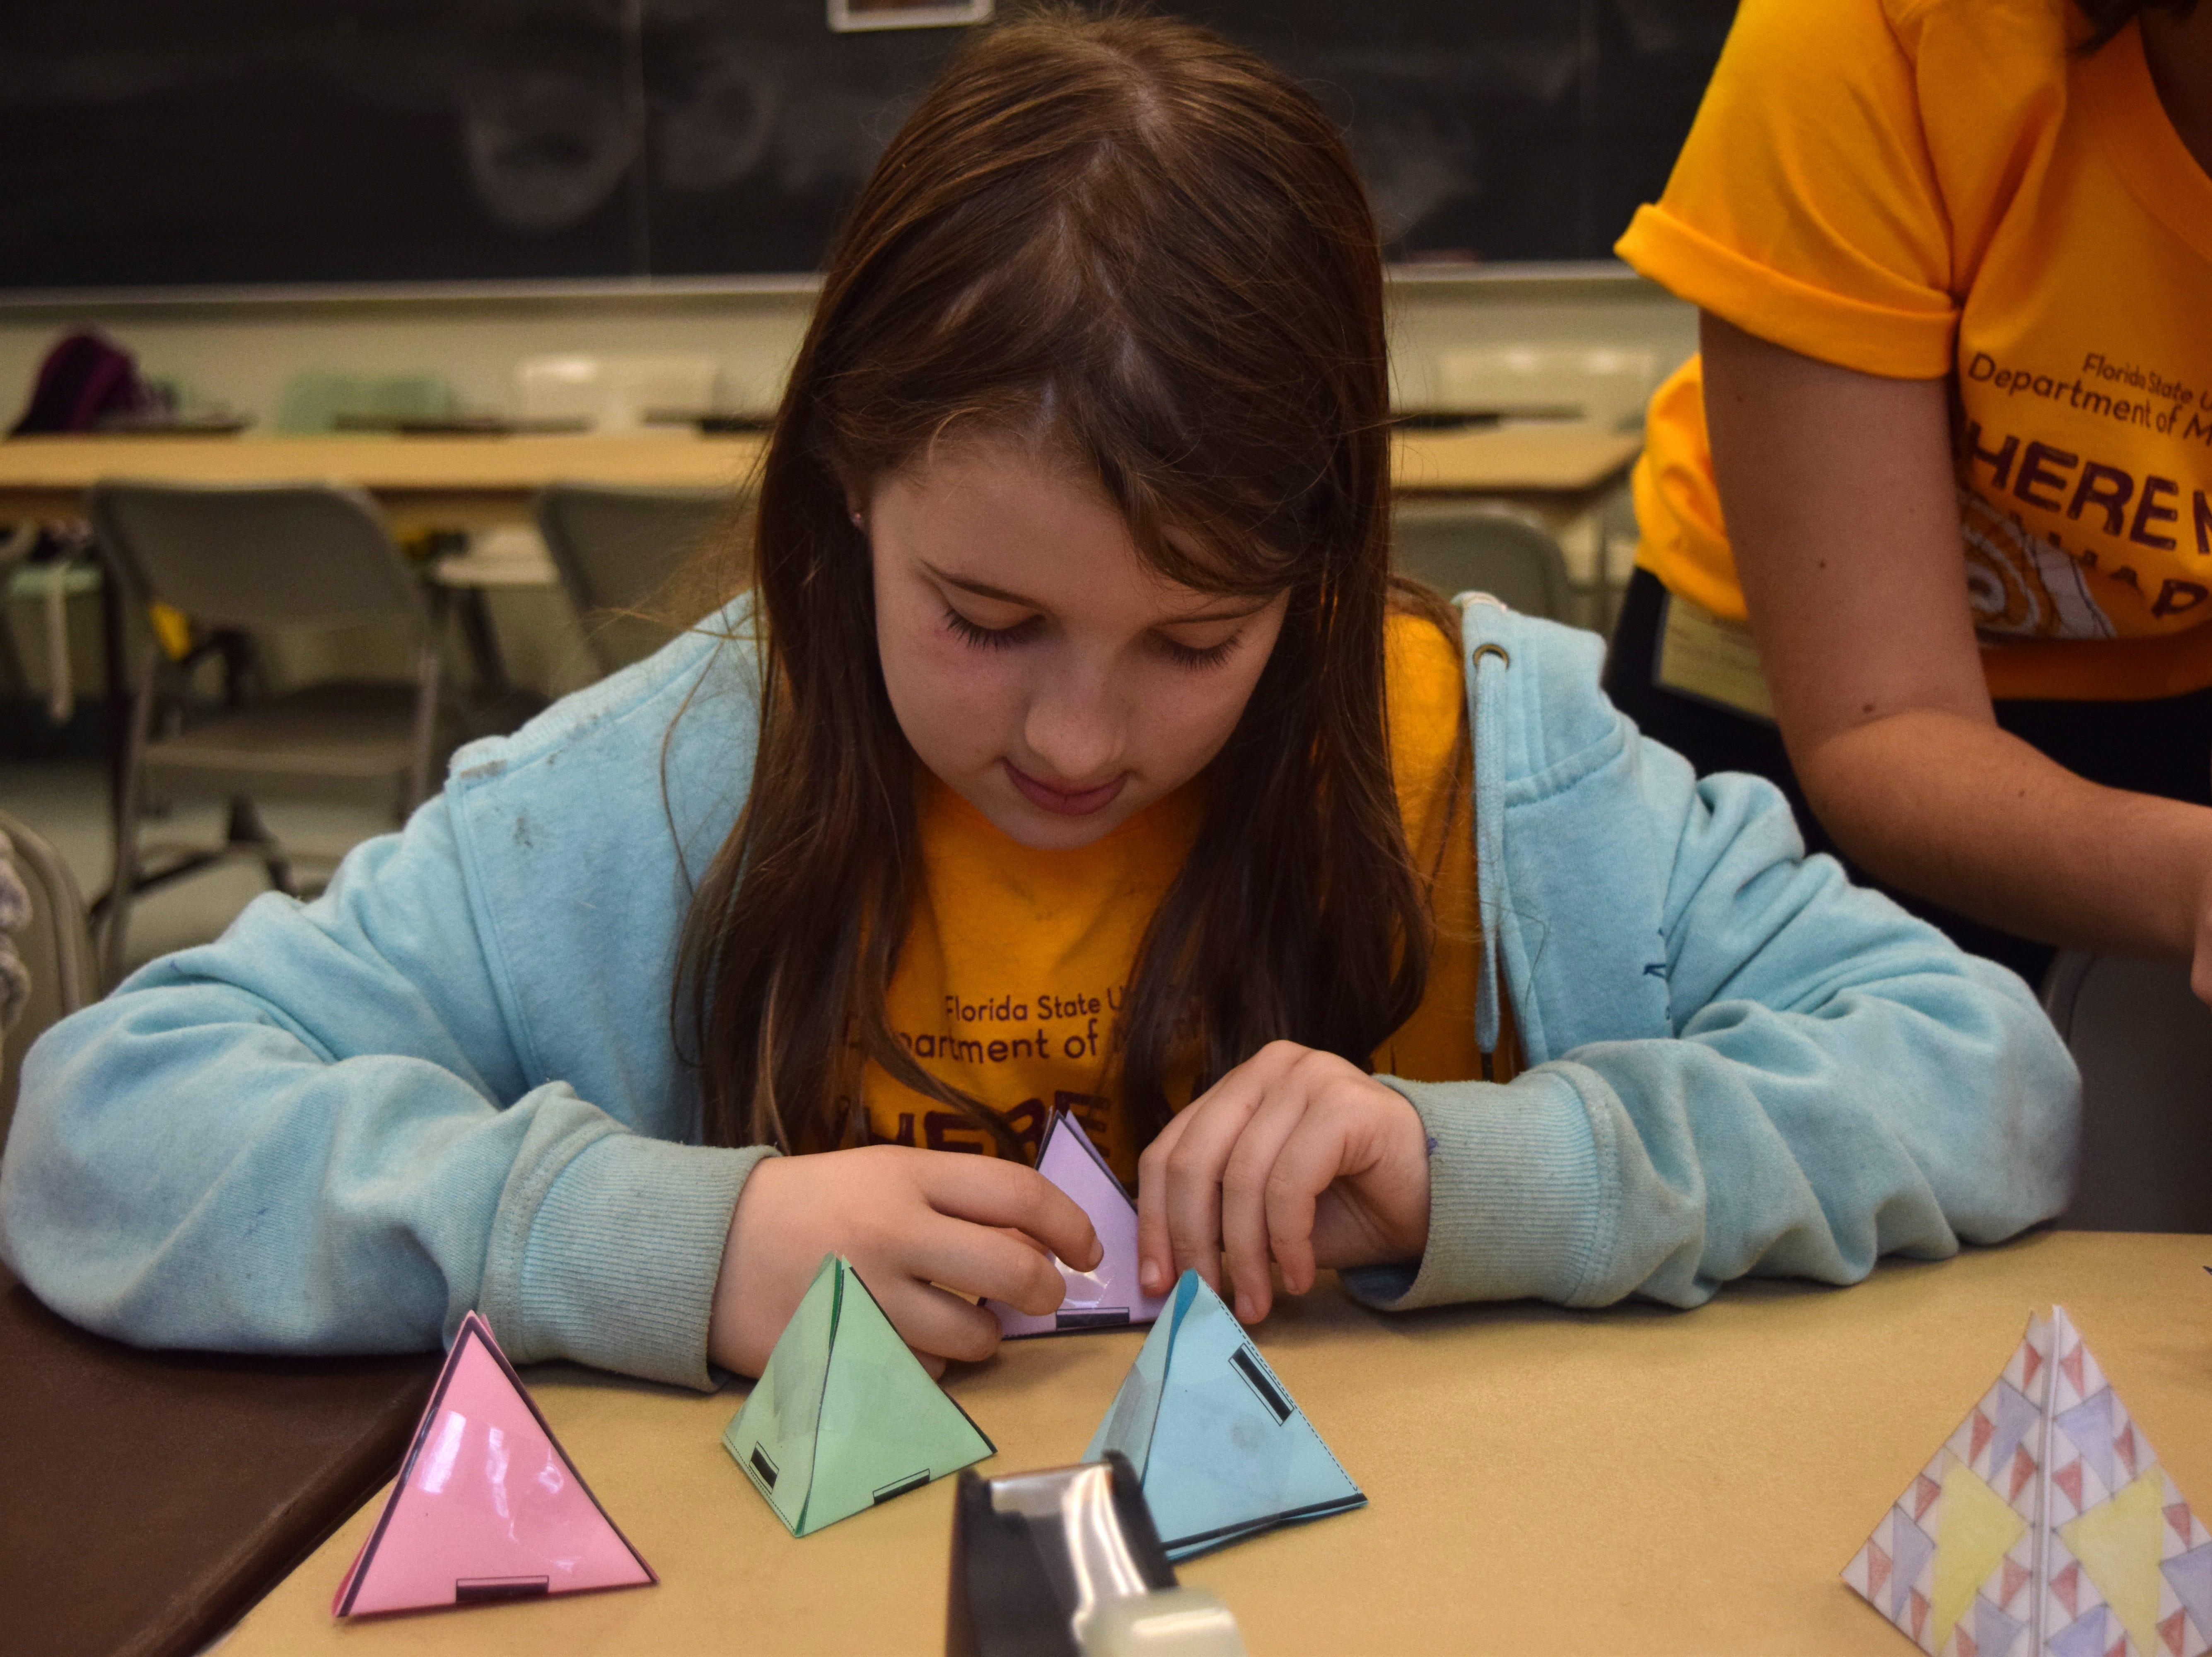 Angela Watts builds a fractal during Fun Math Day at Florida State. The 10-year-old likes math because it's fun.